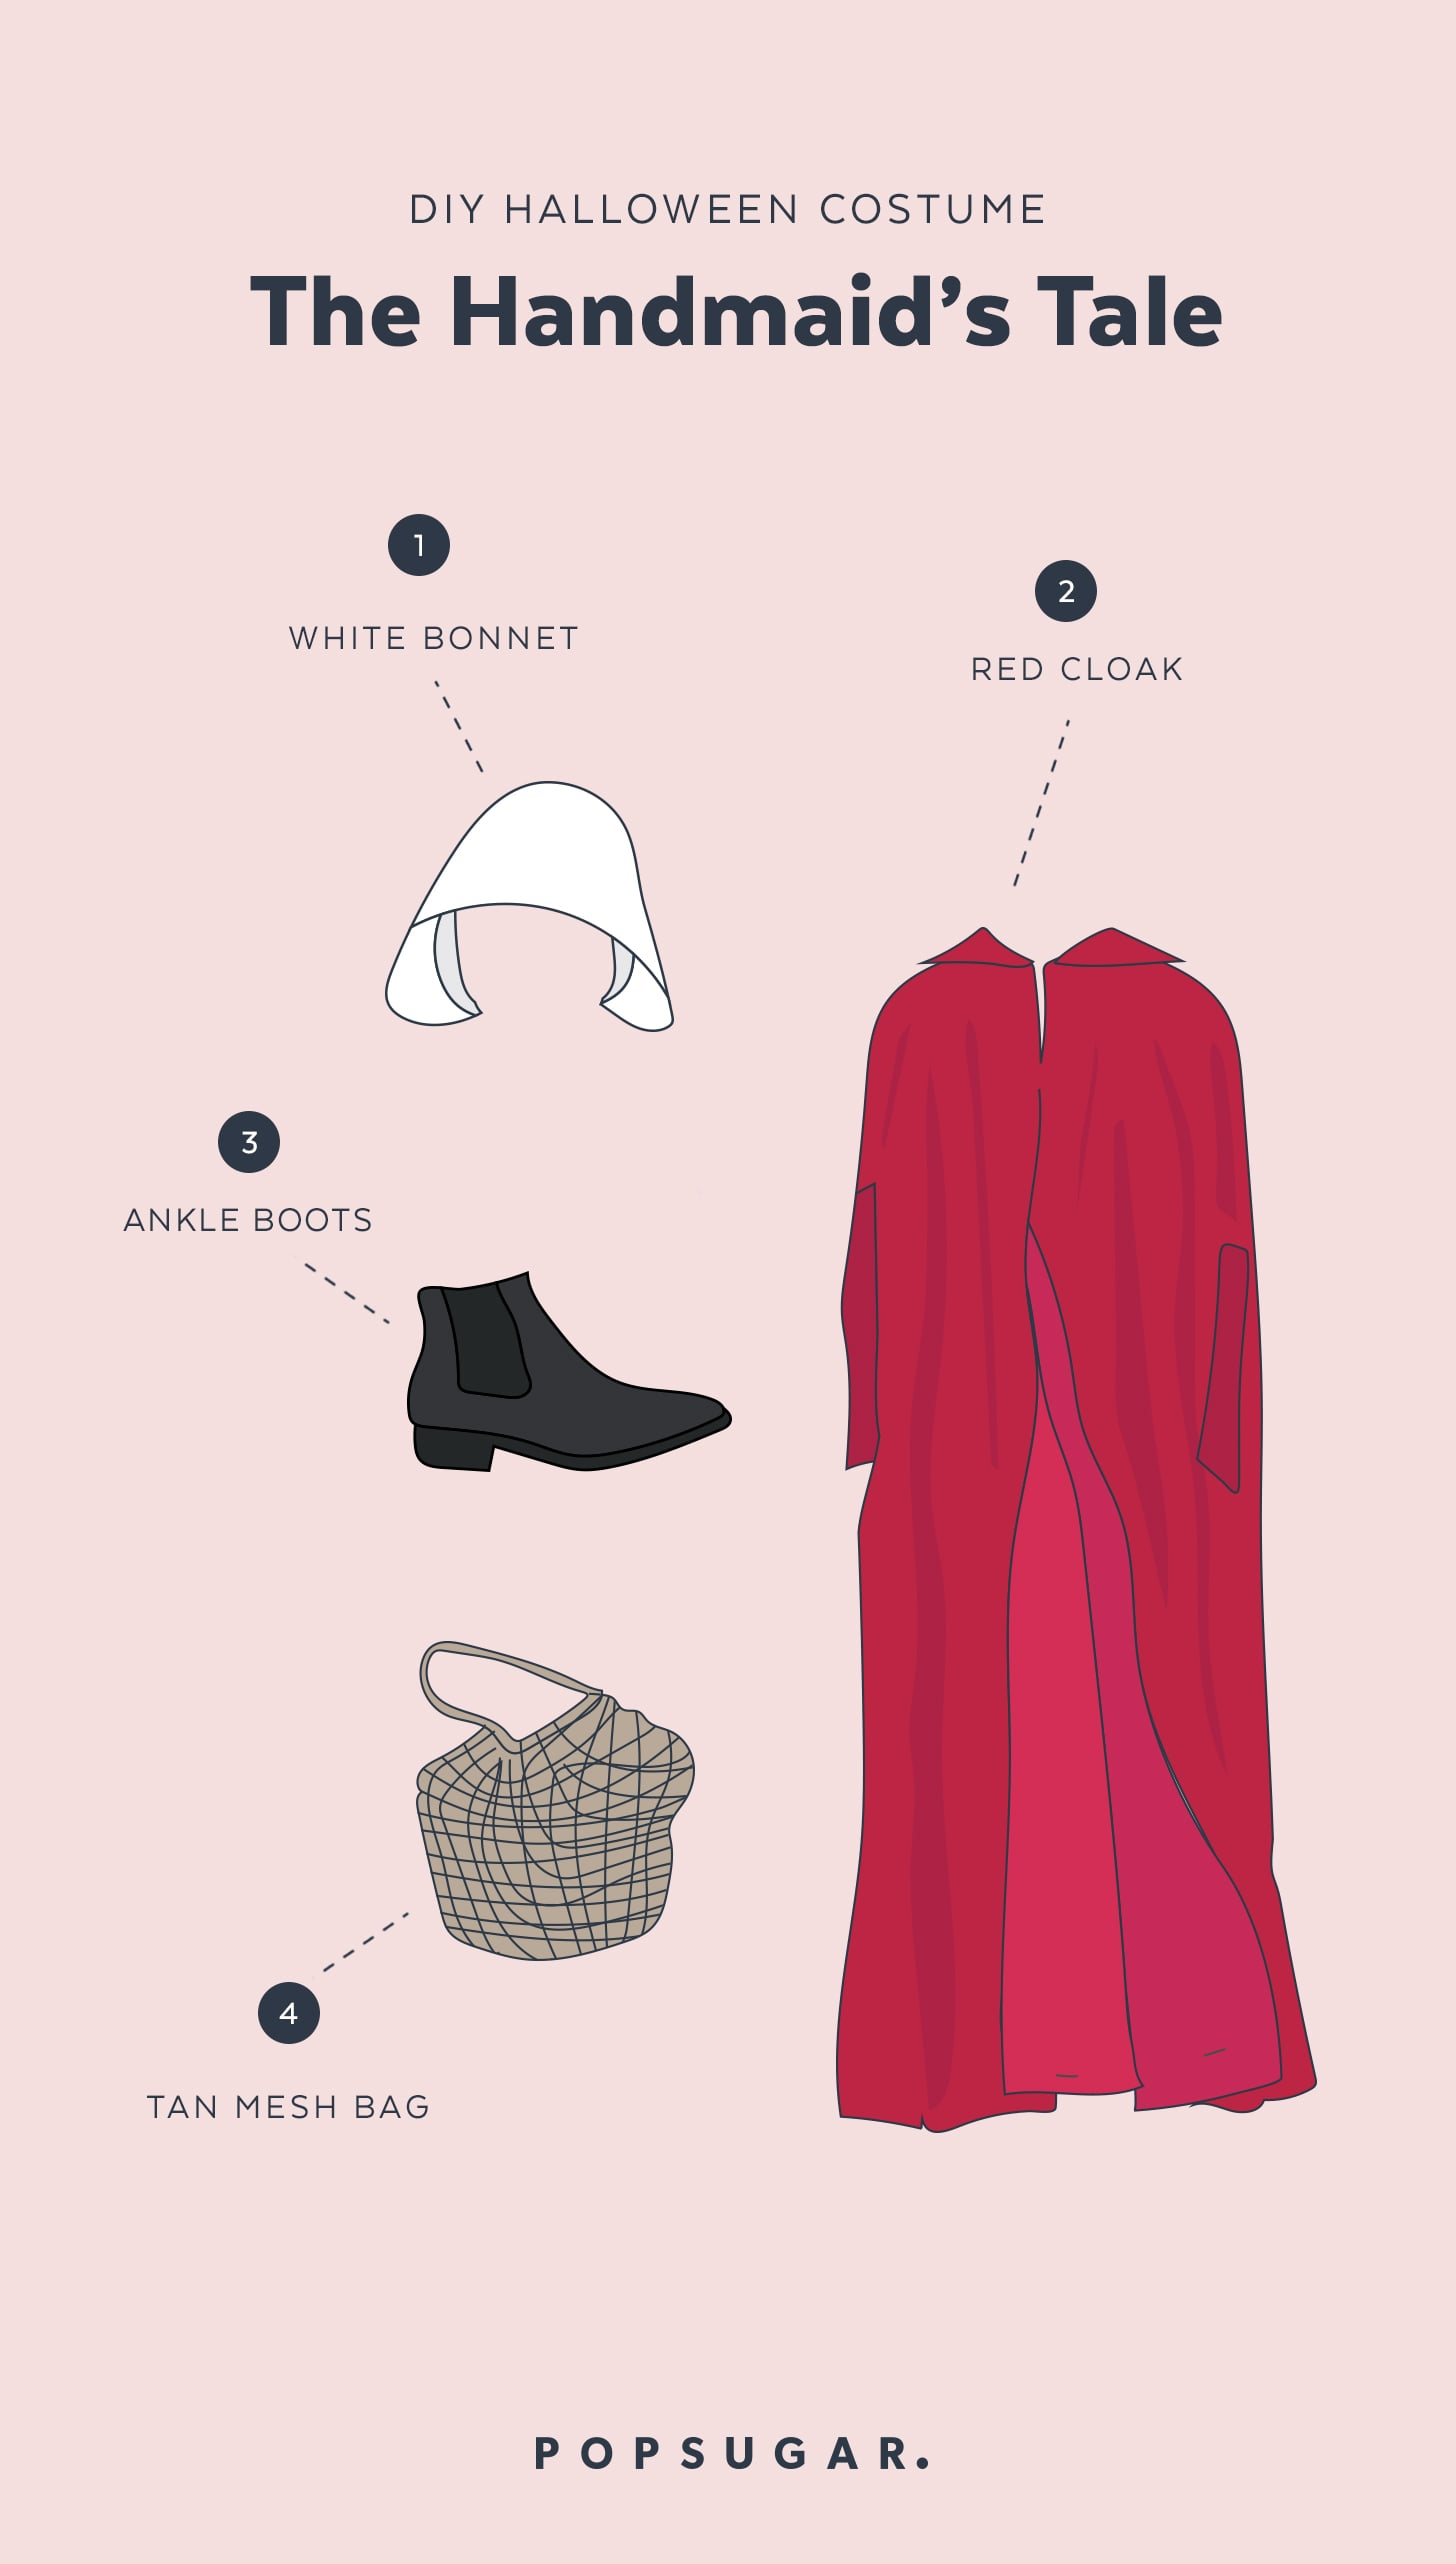 Handmaids tale halloween costume popsugar smart living check out the rest of our top 10 halloween costumes for 2017 solutioingenieria Choice Image